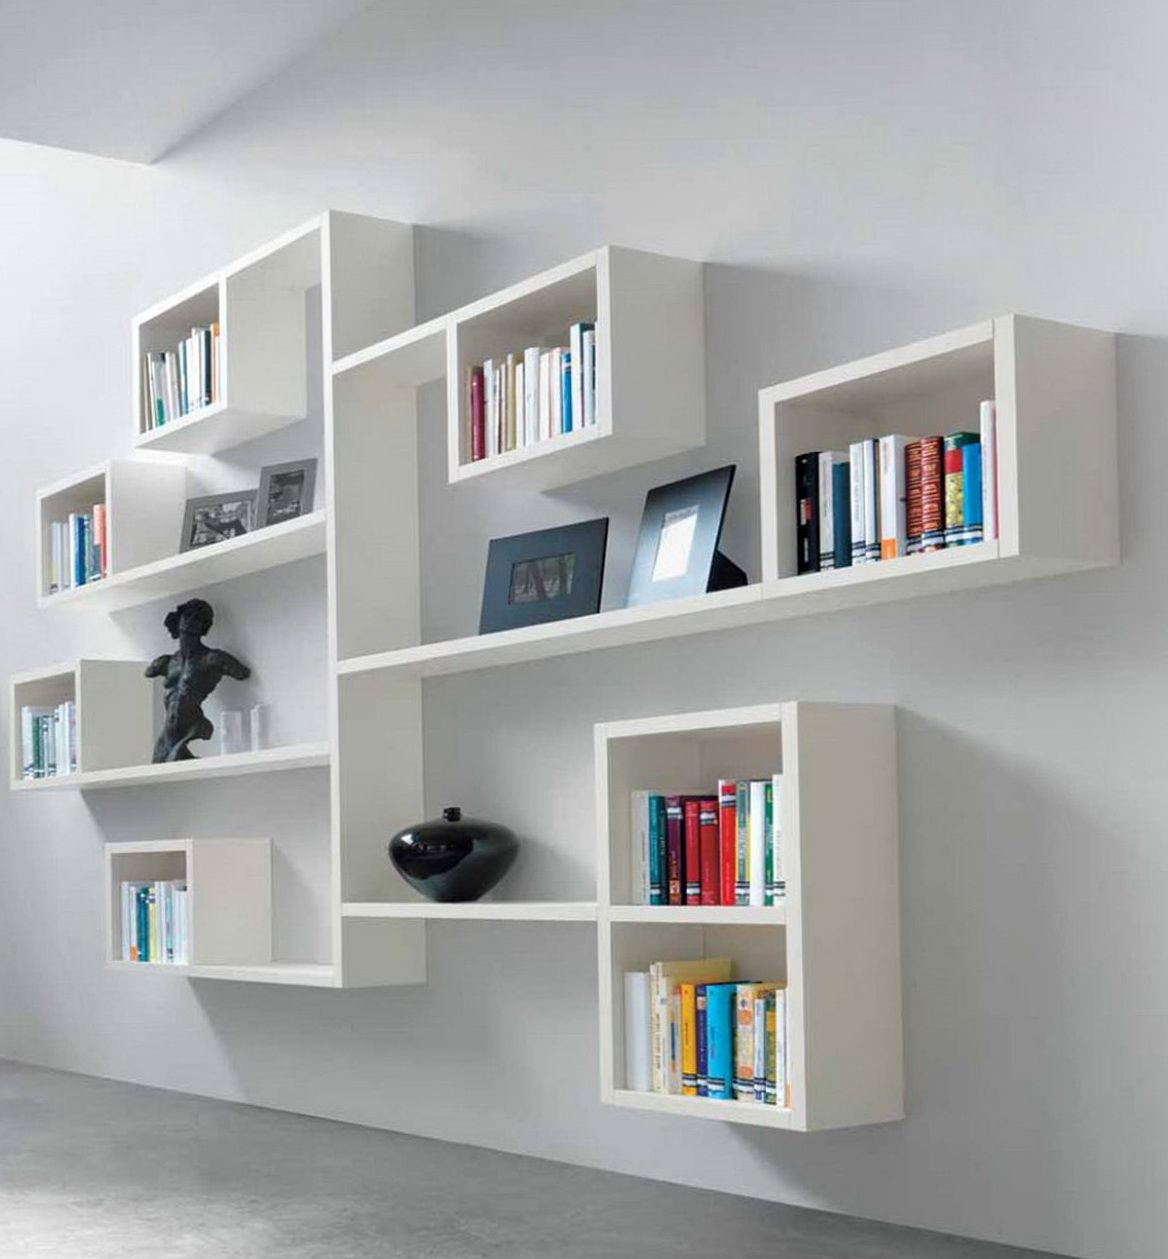 Childrens Book Shelves Wall Mounted mur Pinterest Shelf